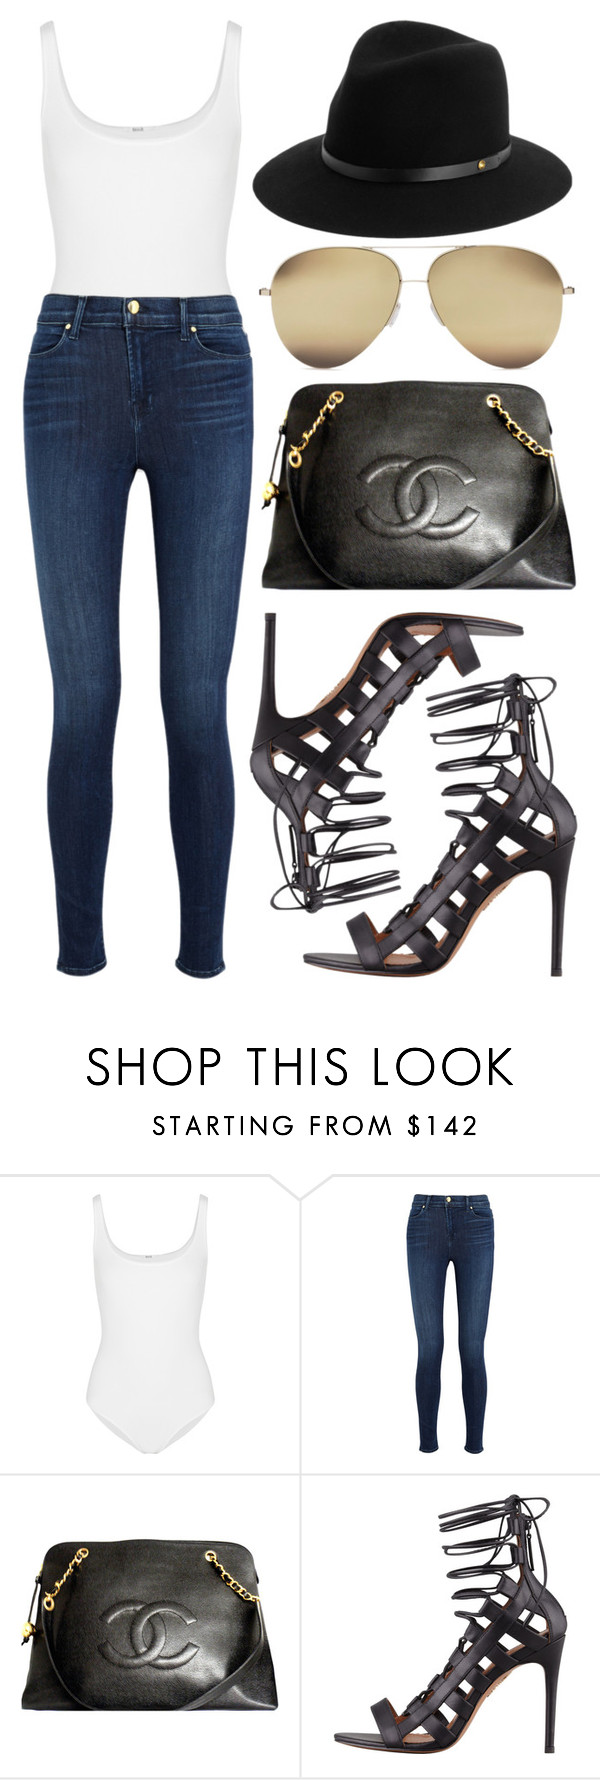 """""""Untitled #1457"""" by victoriaxo97 ❤ liked on Polyvore featuring Wolford, J Brand, Chanel, Aquazzura and rag & bone"""